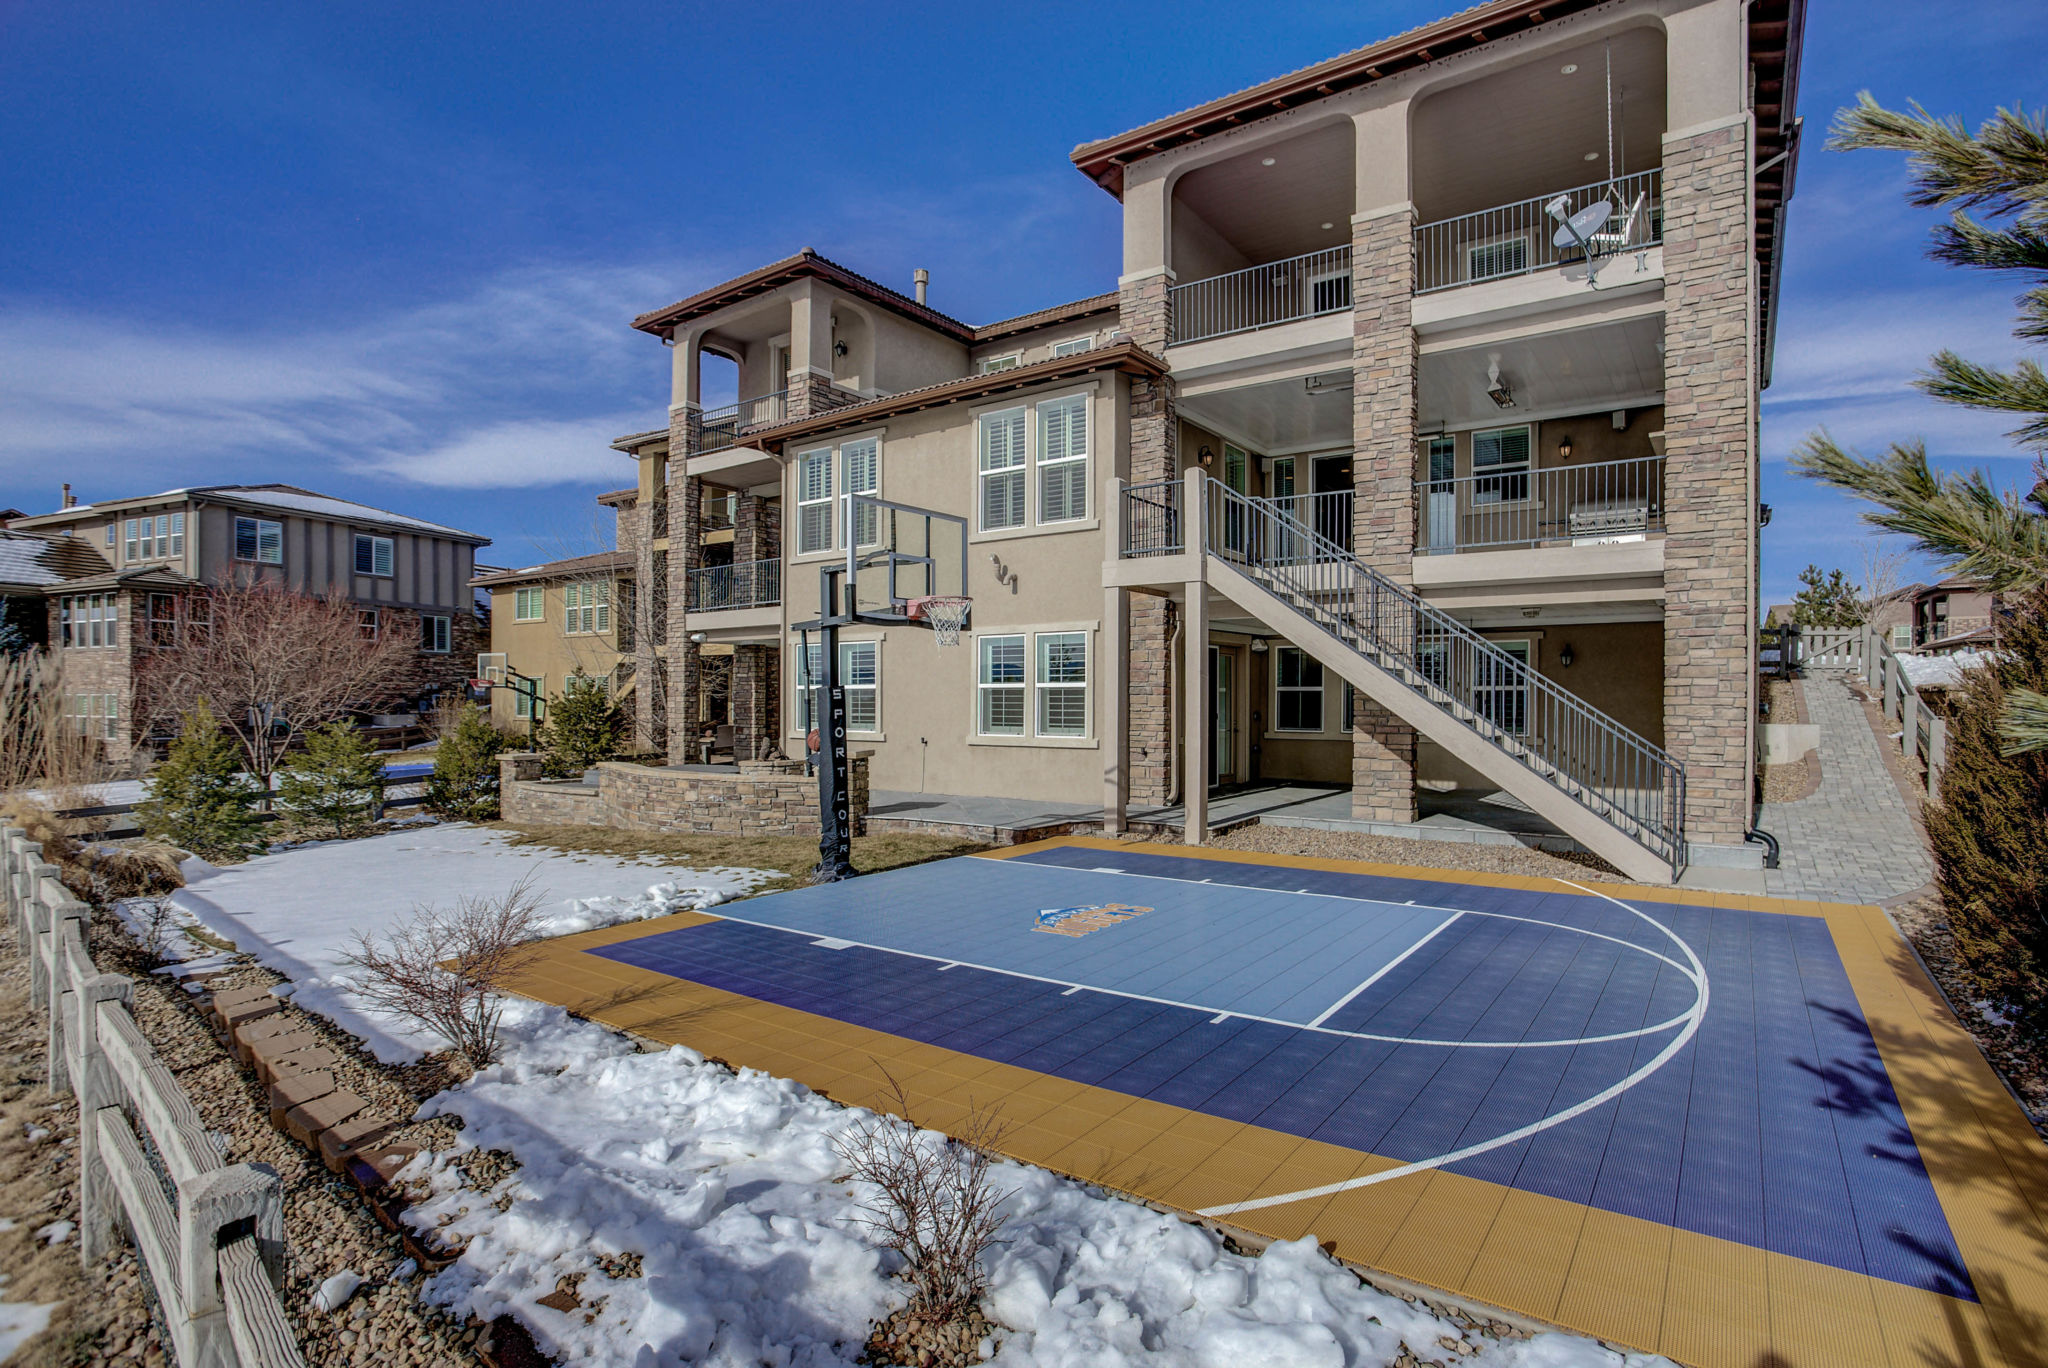 Hoop It Up At Home Basketball Court Designs California Home